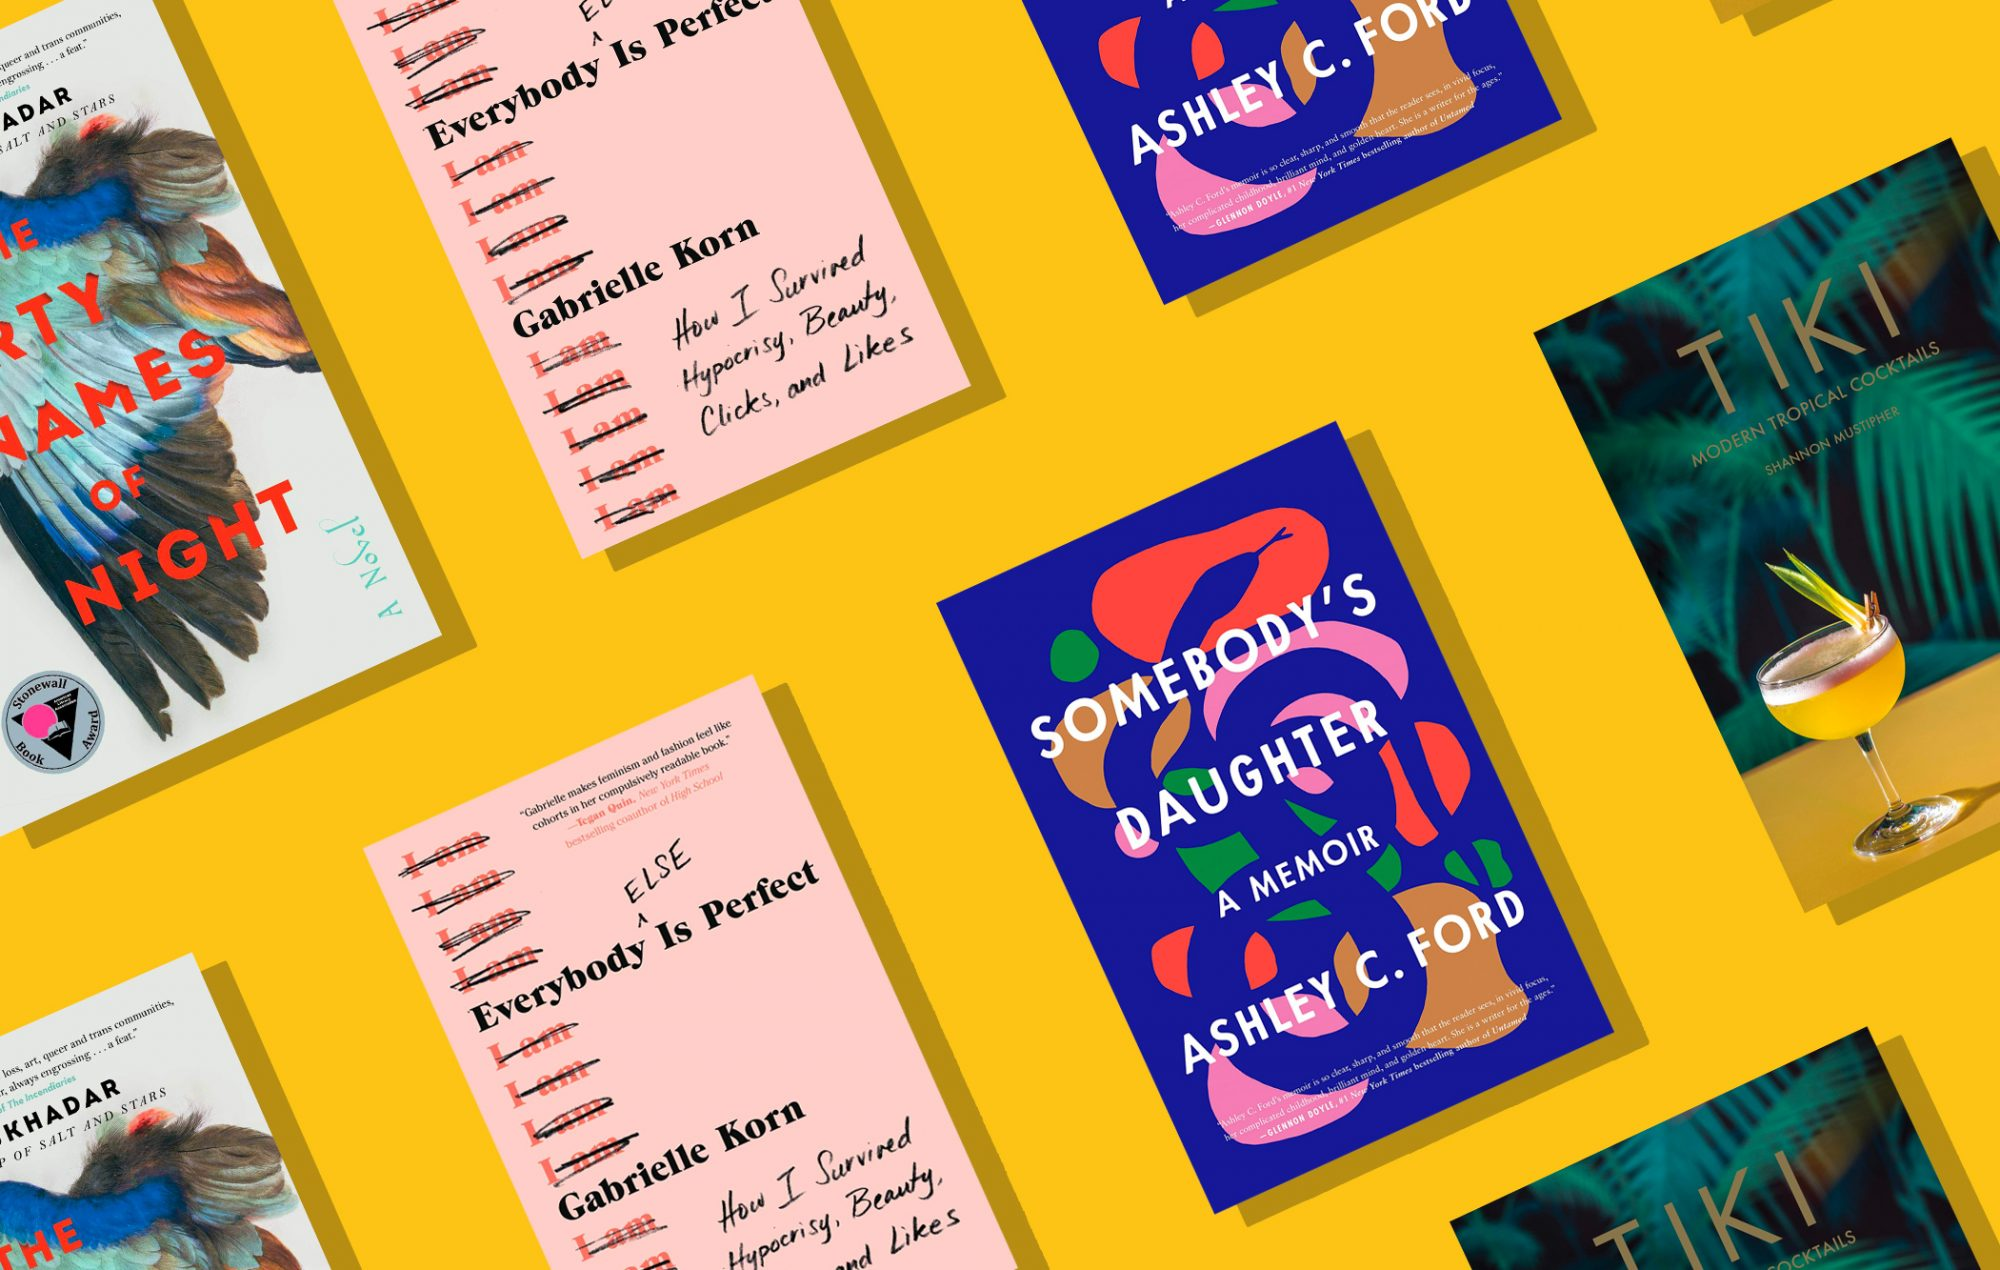 books by LGBTQ authors on yellow background